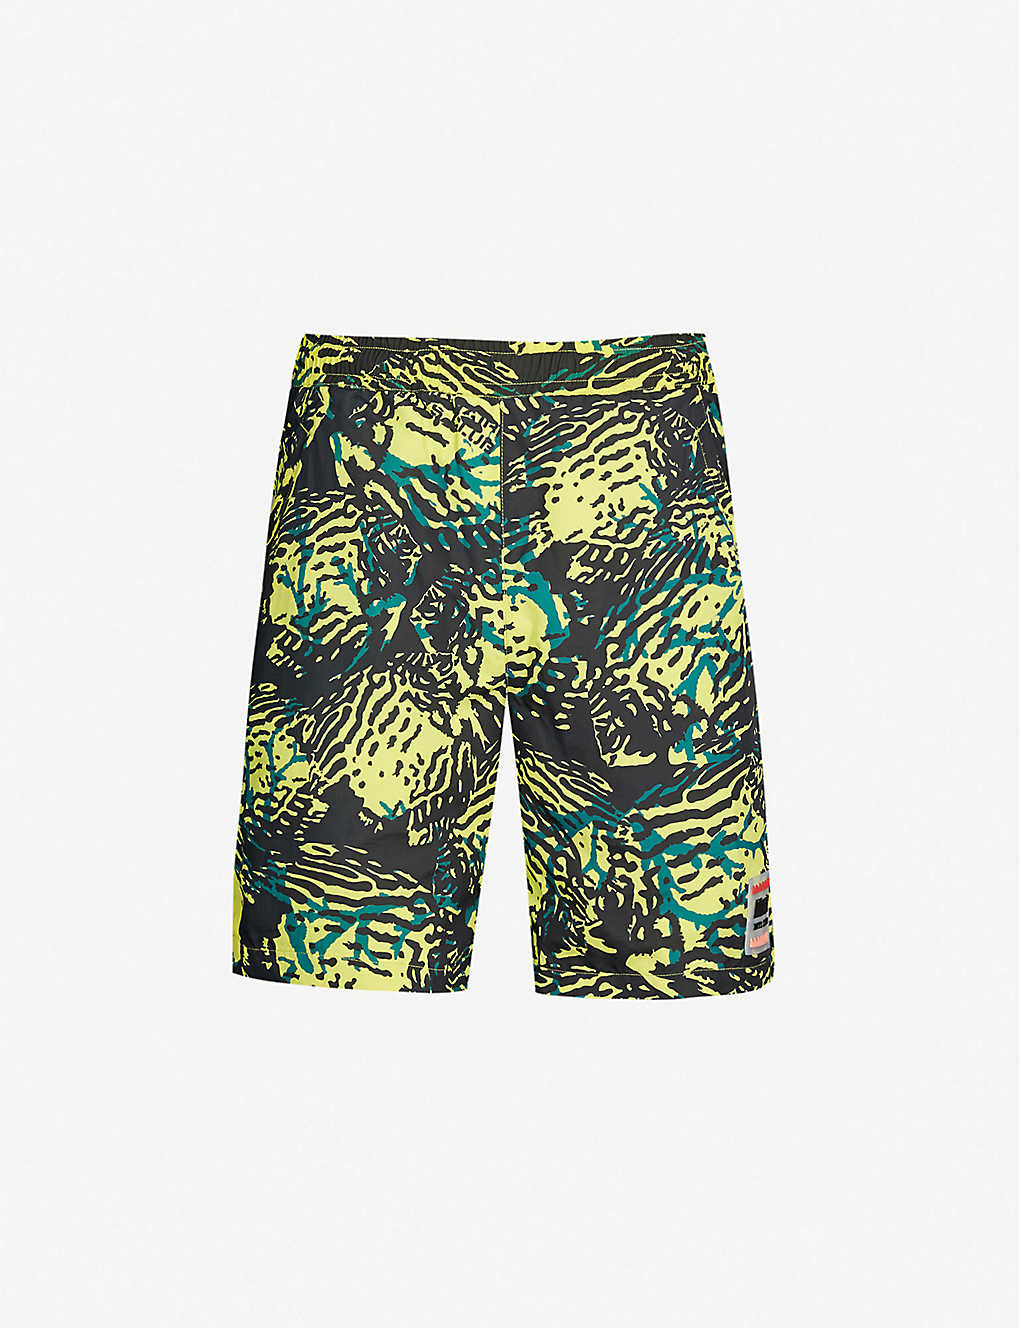 333fa0aad3015 BILLIONAIRE BOYS CLUB - Fish camouflage-print shell shorts ...